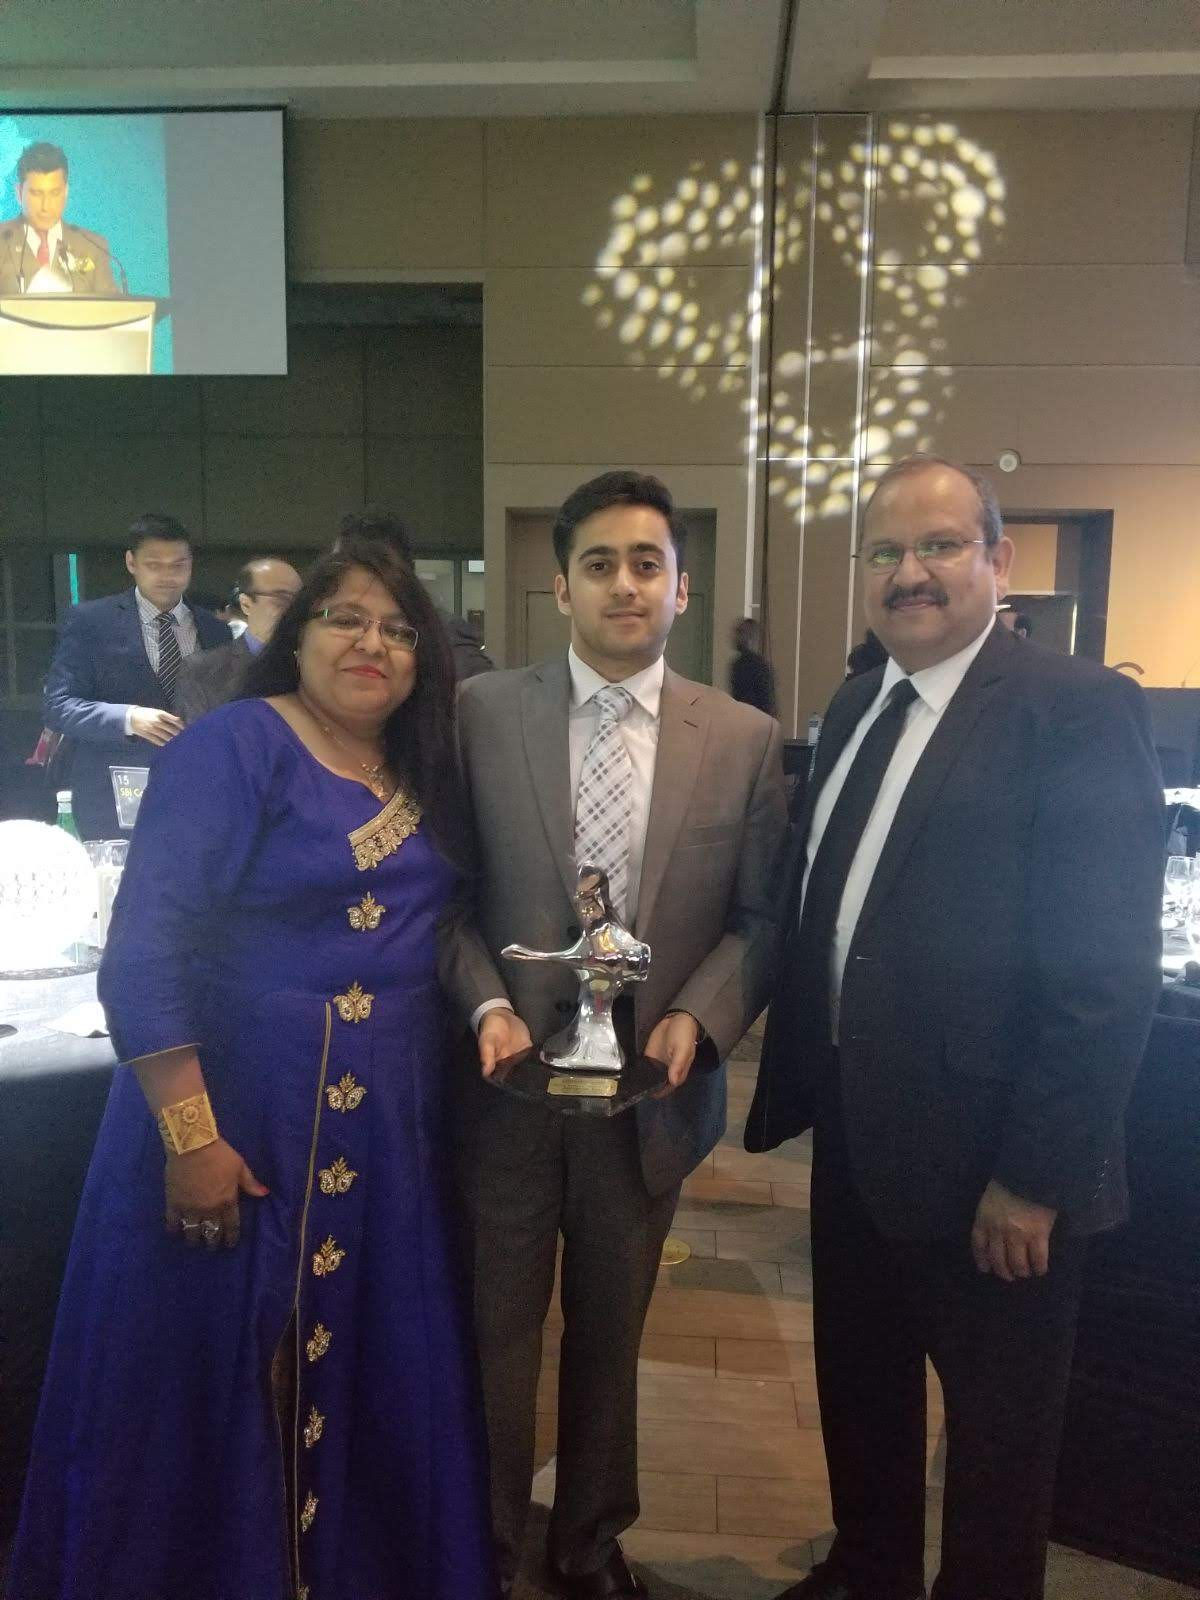 Abhishek Jain with his mother and SBI Canada Bank CEO Rajesh Gupta from whom he received the ICCC award.